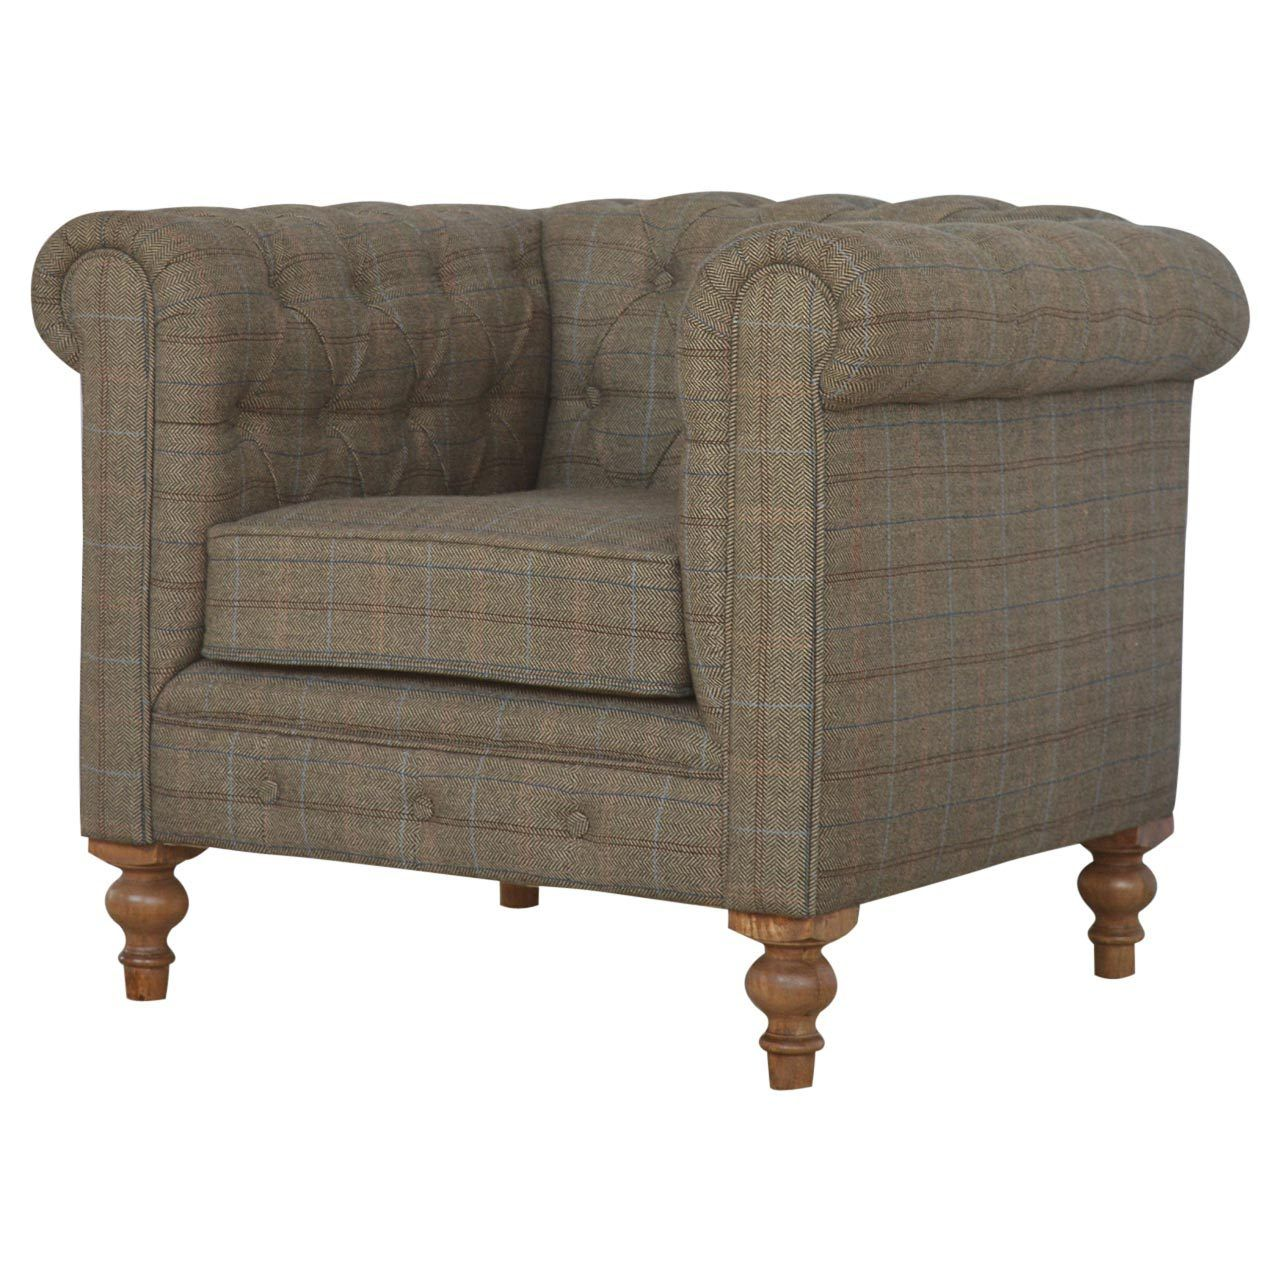 Artisan Chesterfield Single Seater Armchair   Tweed Upholstered U2013 Hickory  Furniture Co.